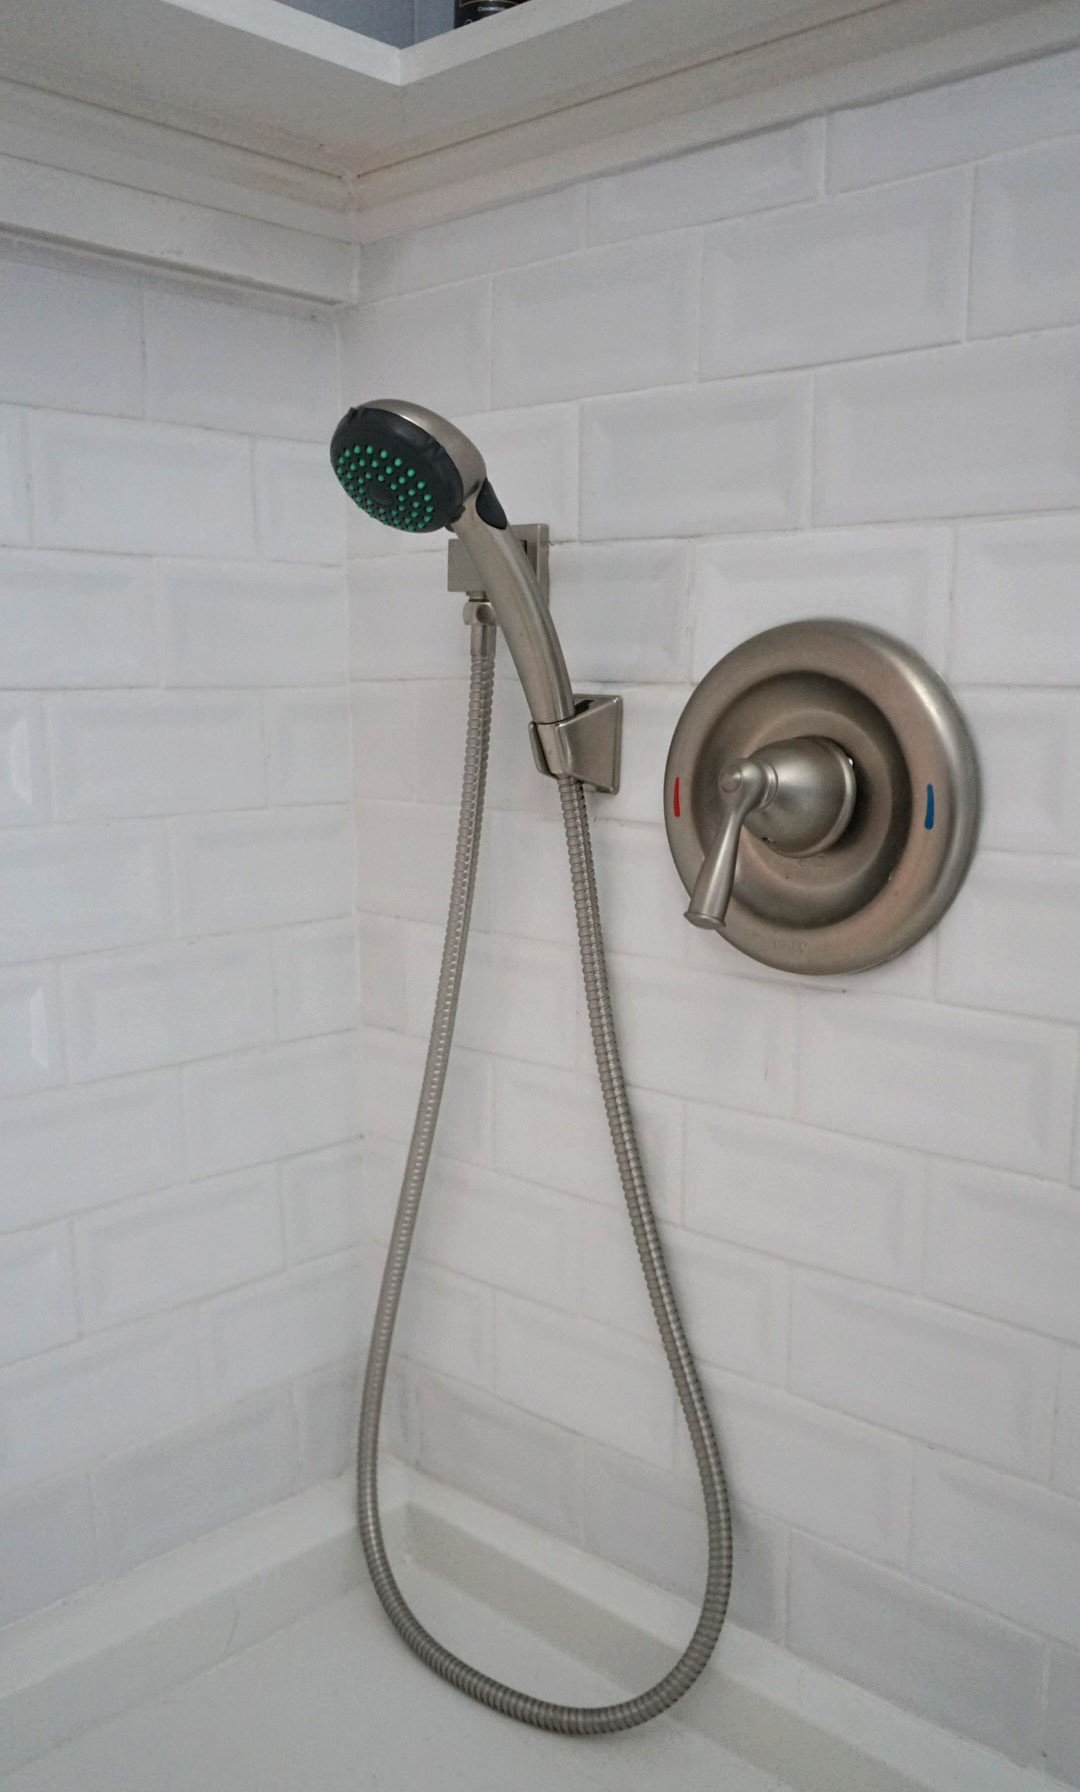 shower sprayer for dog wash